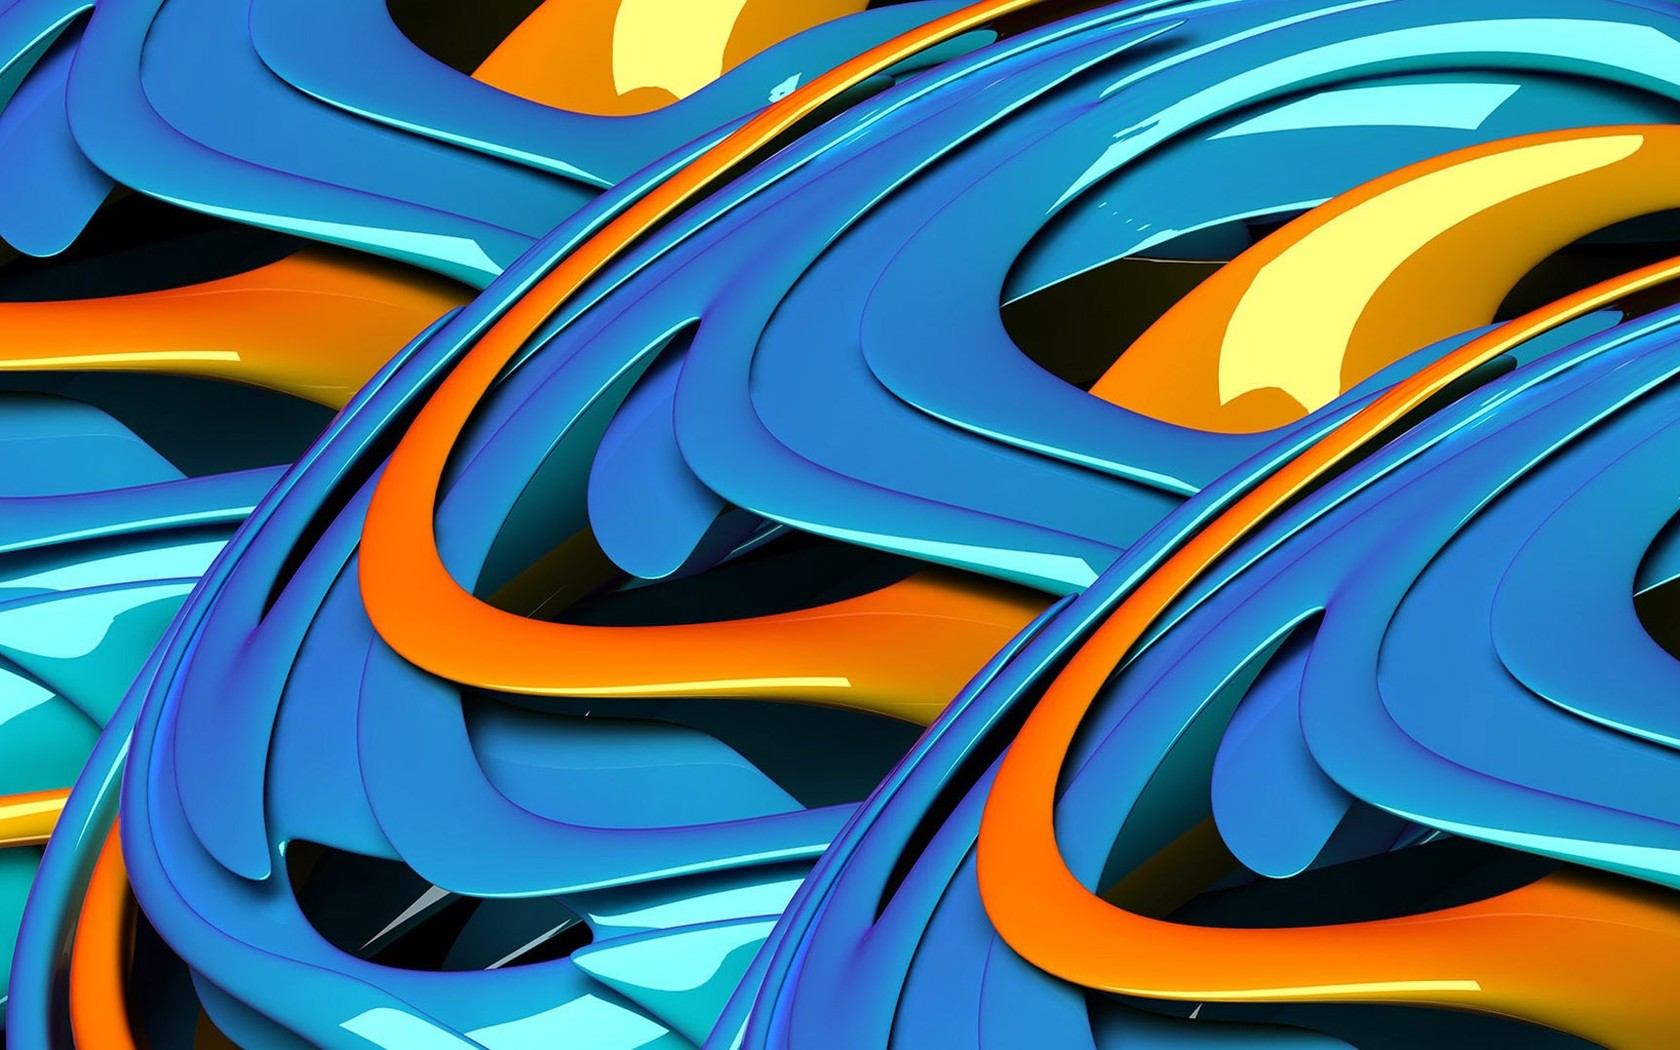 Download Blue and orange waves wallpaper 1680x1050